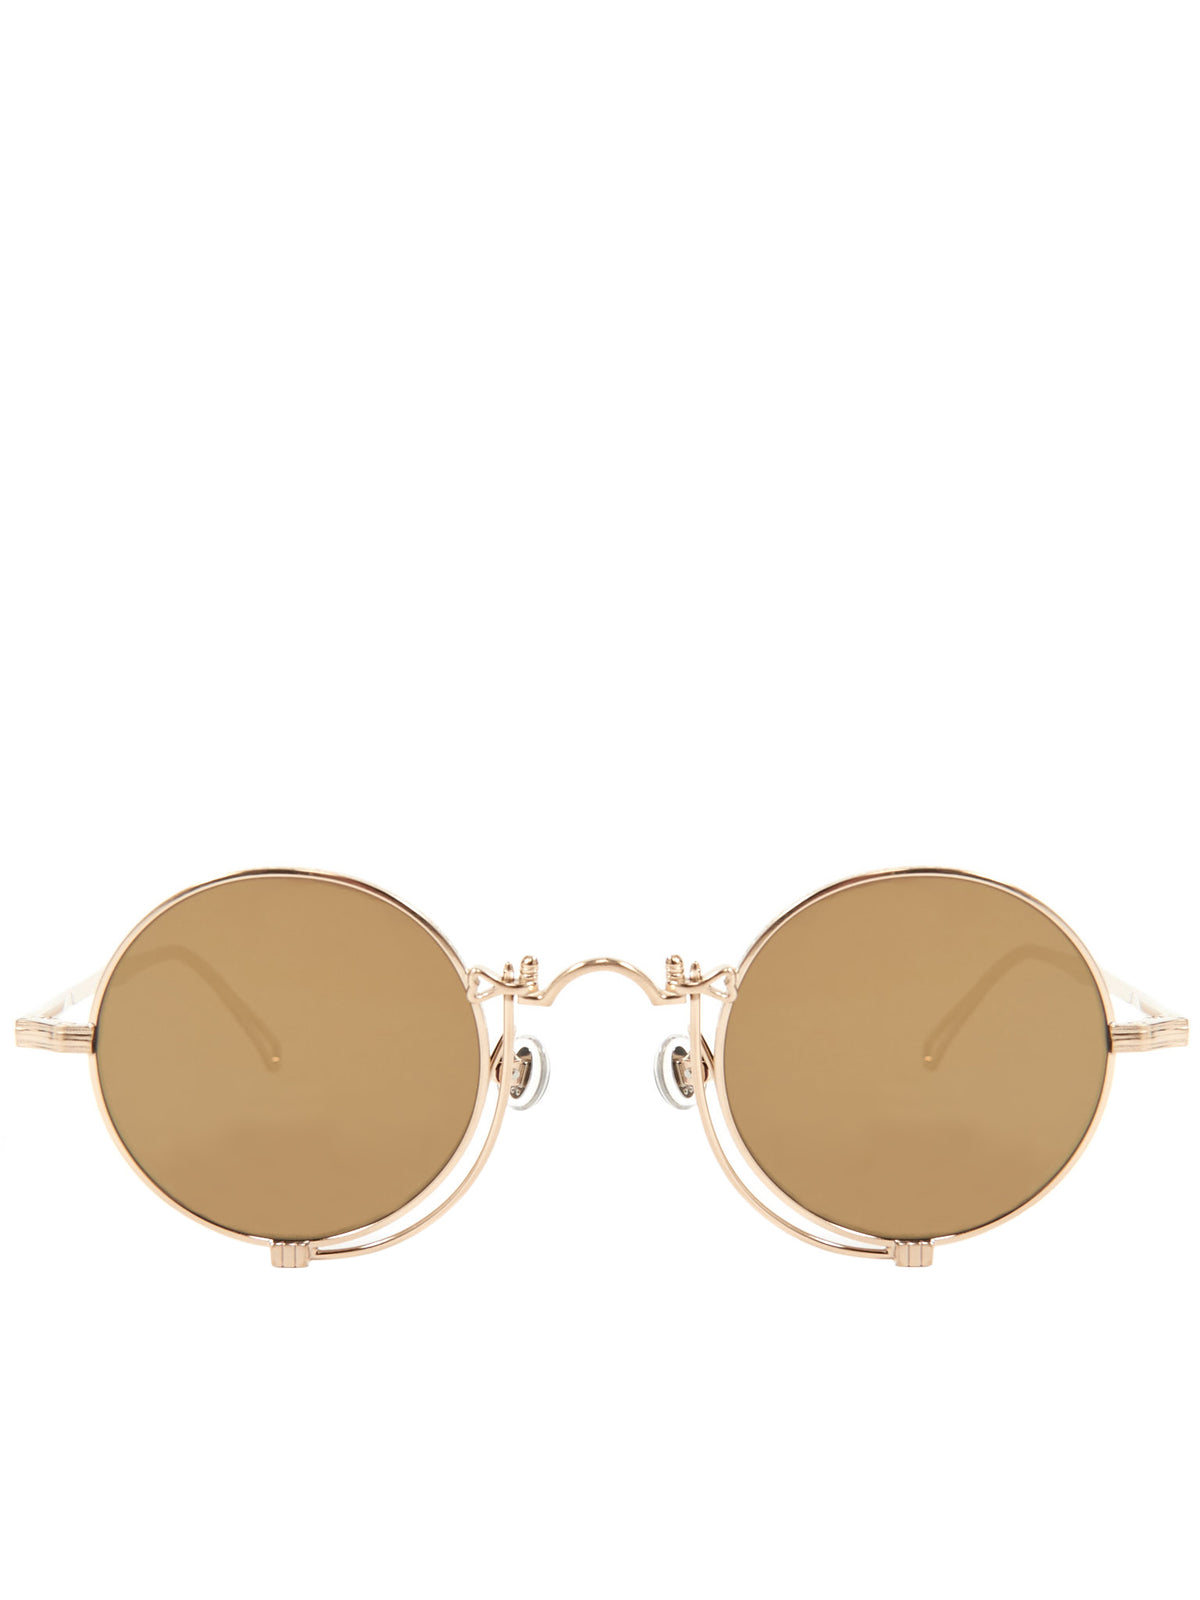 10601H Sunglasses (10601H-BRUSHED-GOLD-MIRROR)